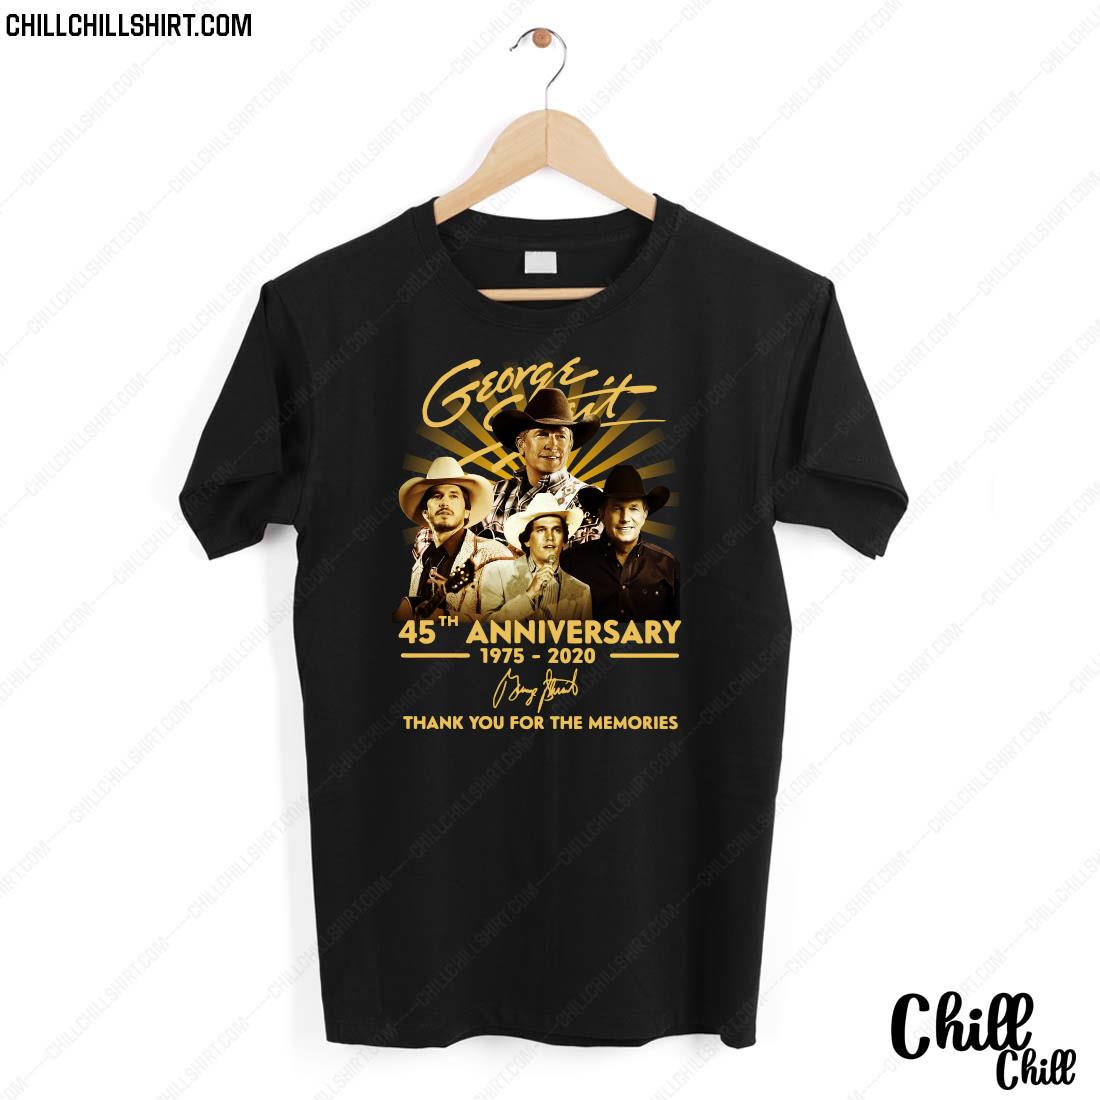 George Strait 45th Anniversary 1975-2020 Signature Thank You For The Memories Shirt